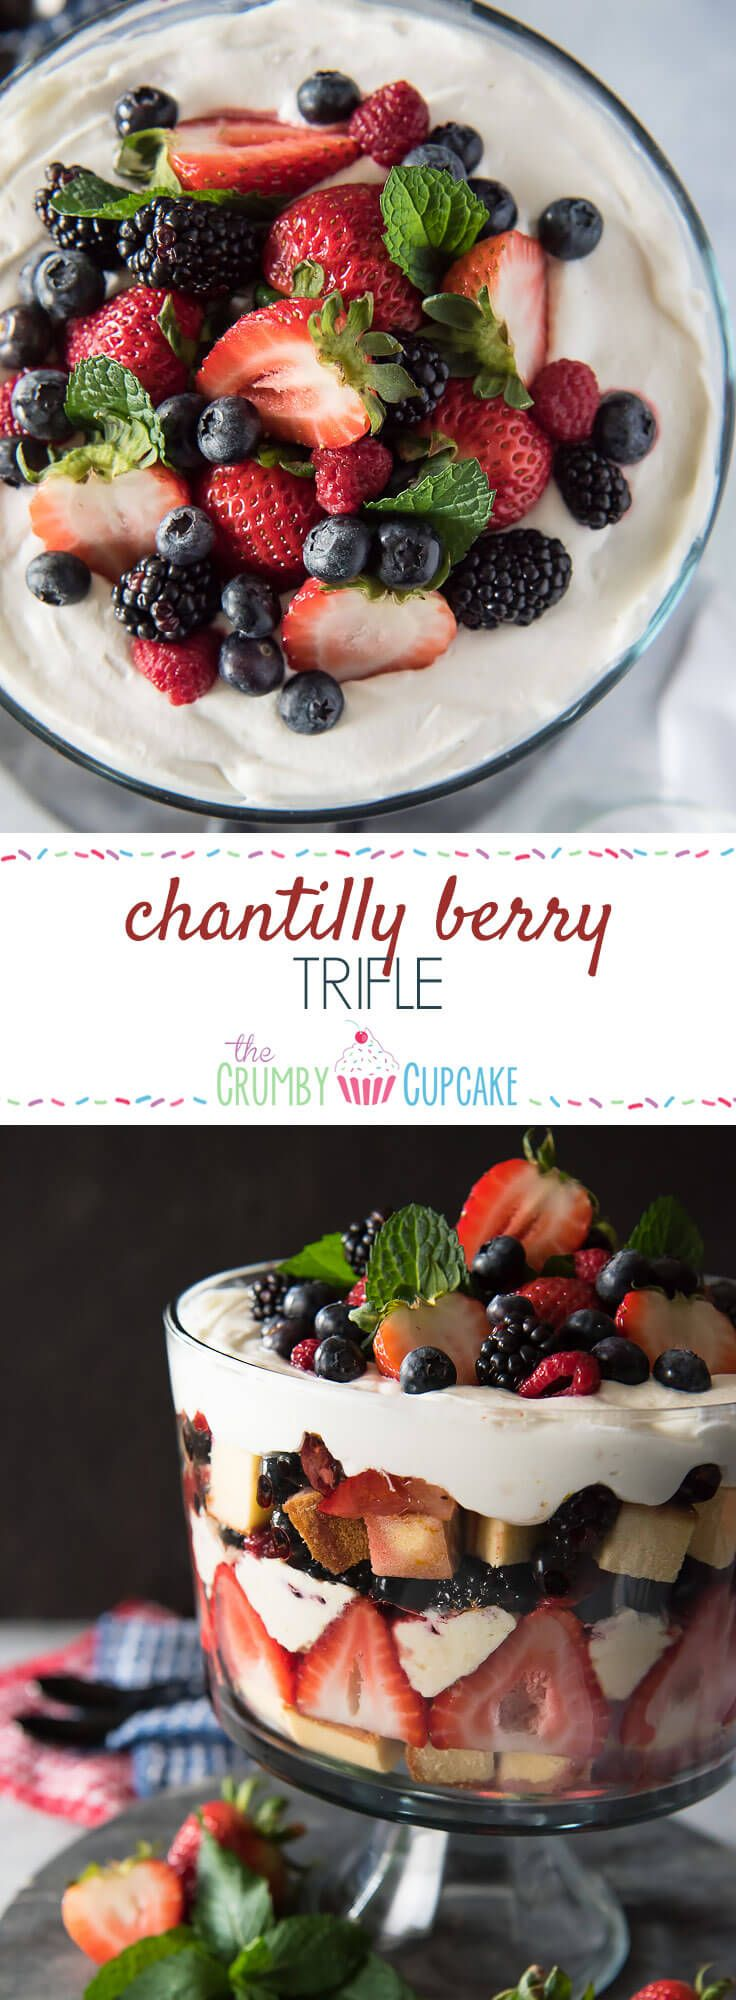 ThisChantilly Berry Trifle is a real crowd pleaser! Pound cake, cheesecake filling, whipped cream, and berries marinated in raspberry liqueur make up the layers of this dessert, which is almost too pretty to eat! #SundaySupper